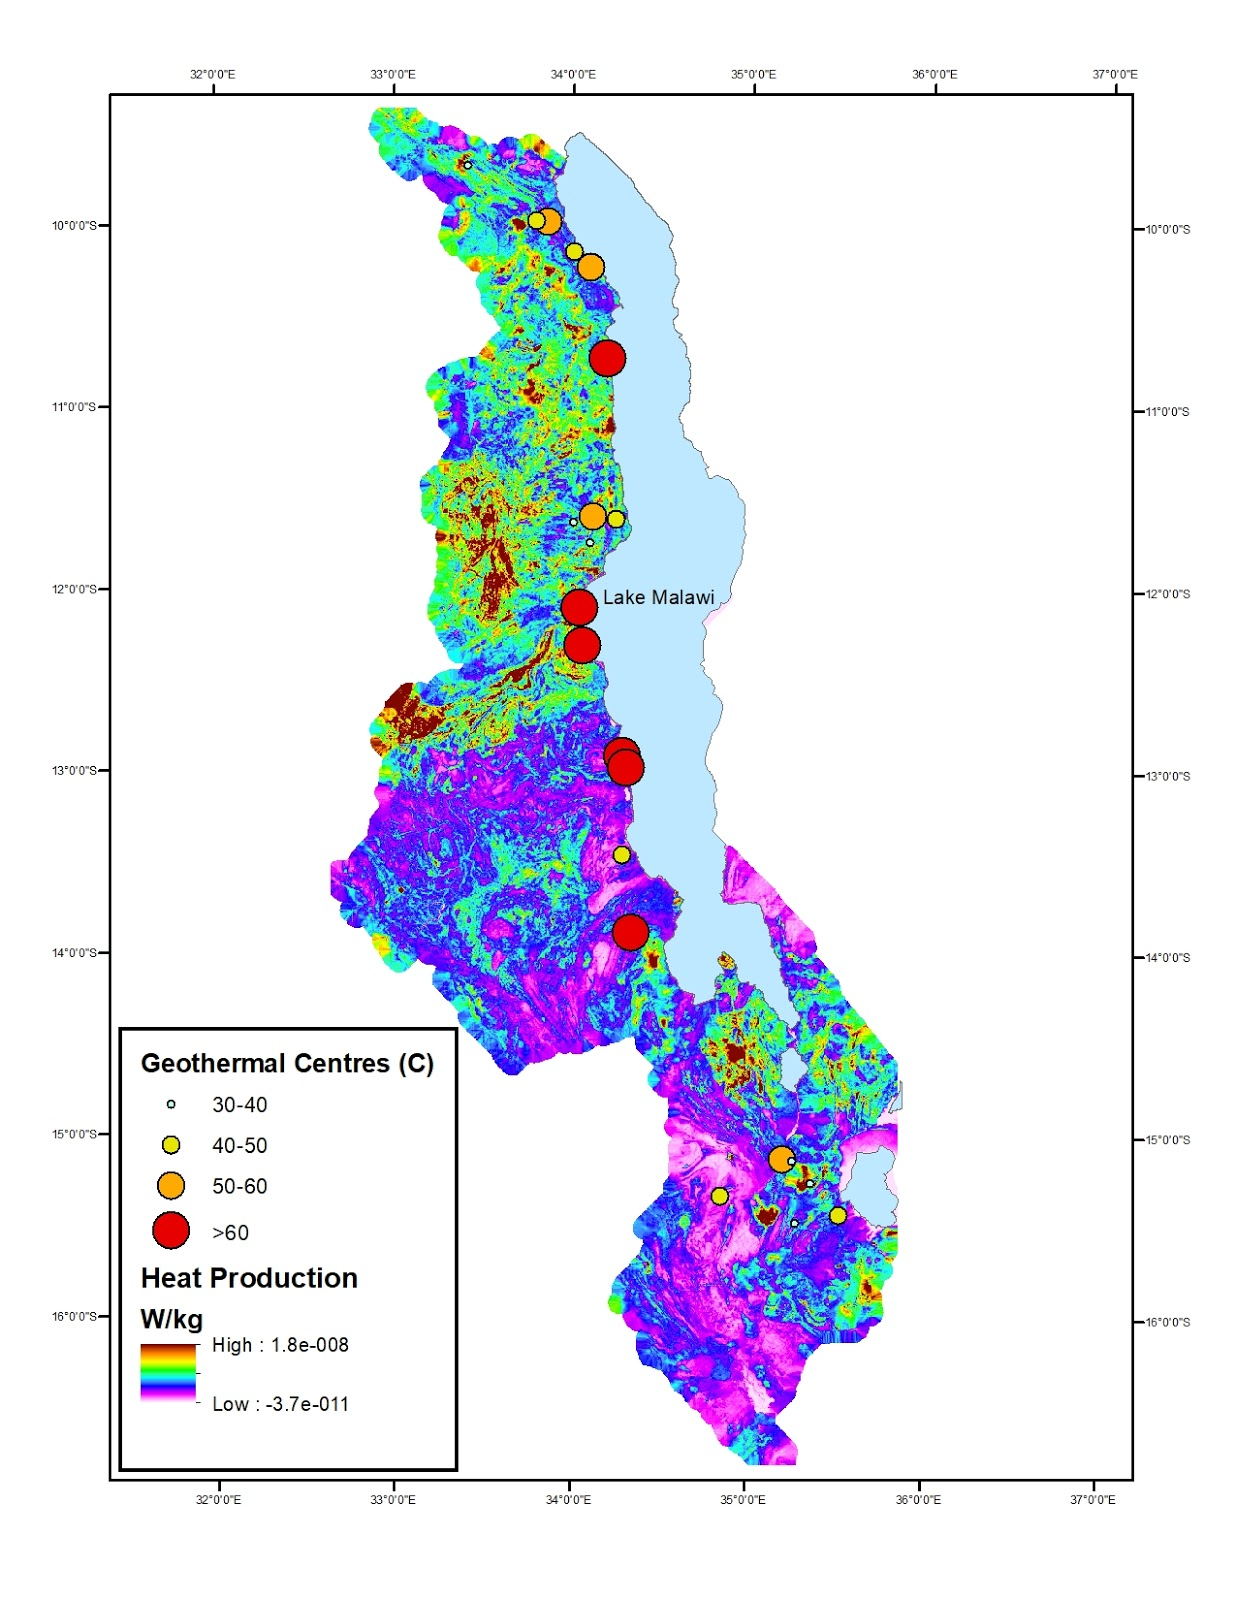 calculated heat production map and geothermal centres